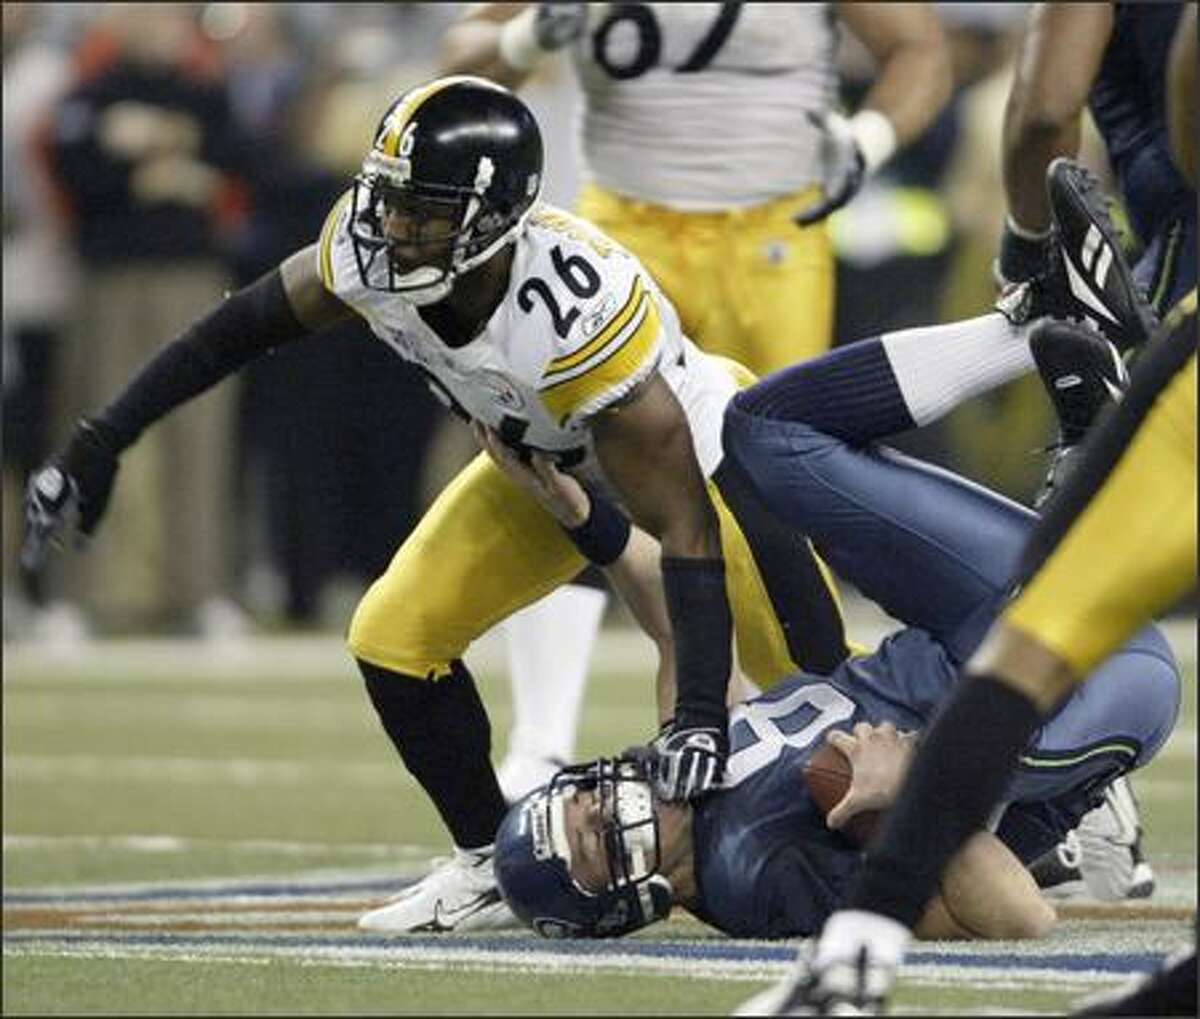 Matt Hasselbeck is sacked by Deshea Townsend in the fourth quarter.